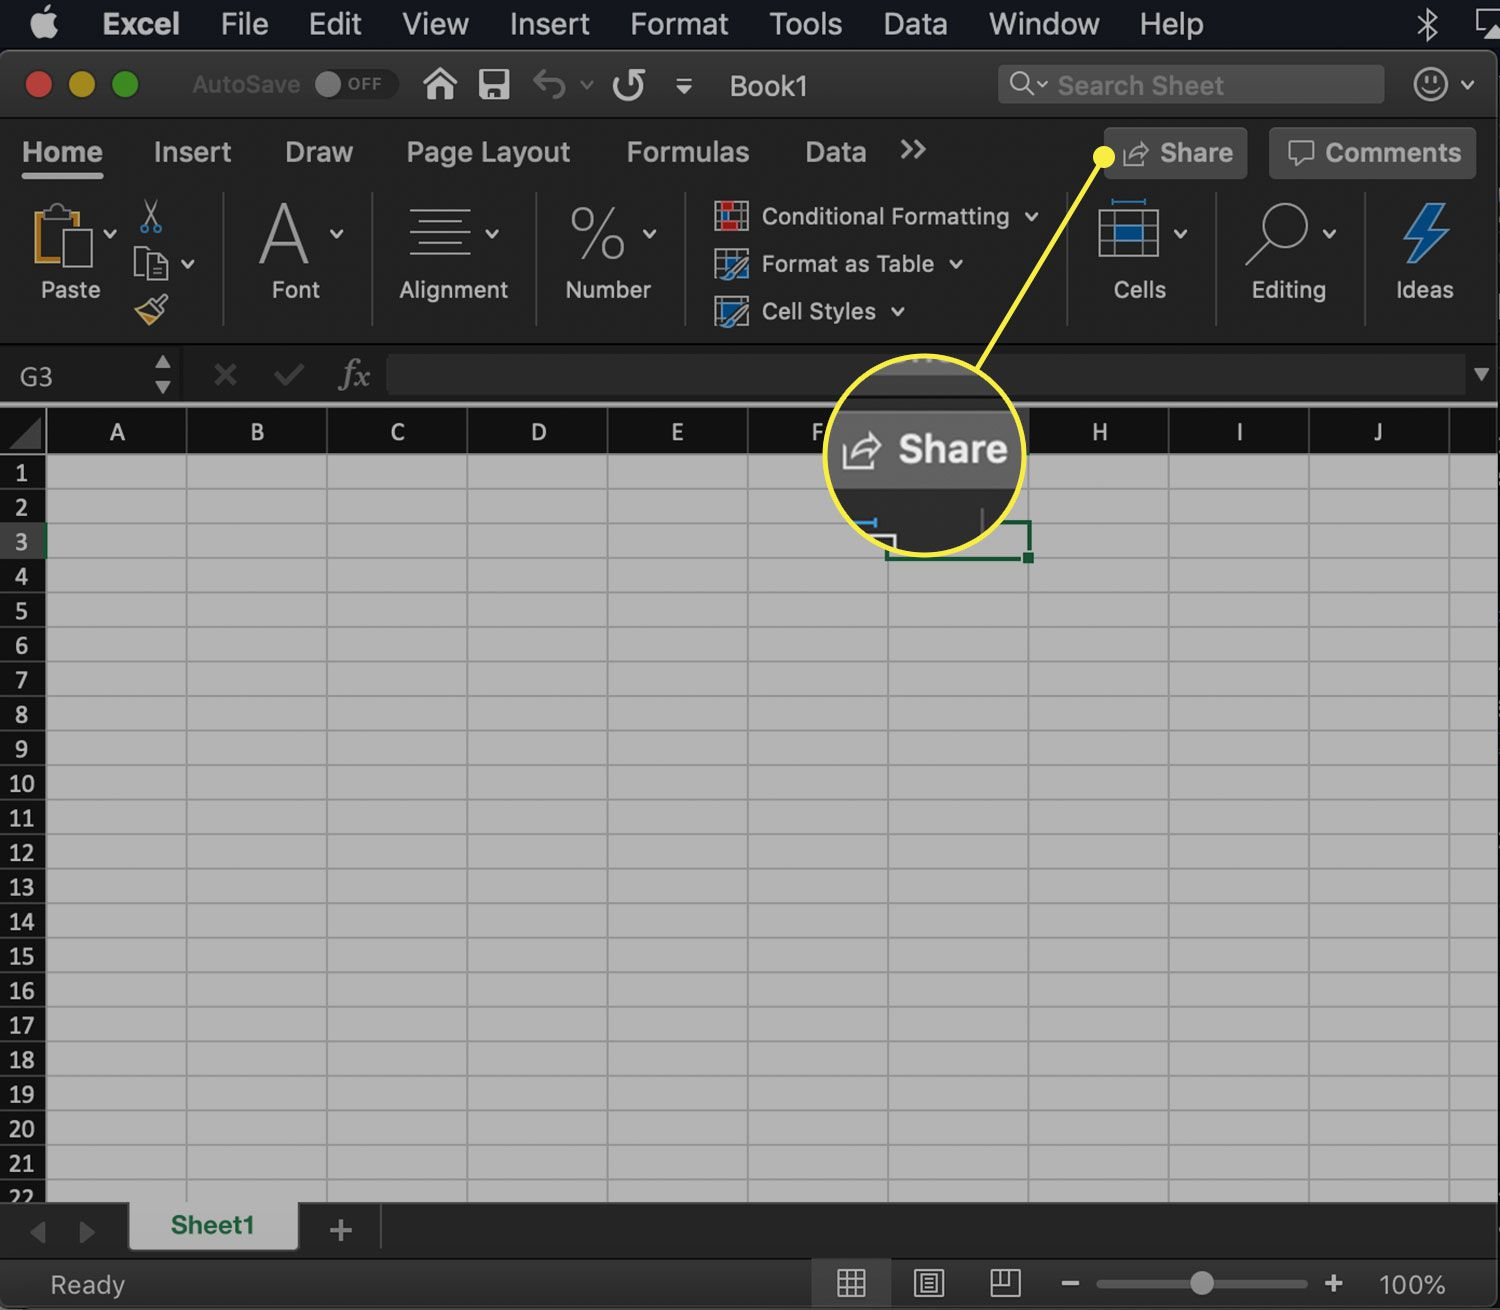 The Share button in Excel